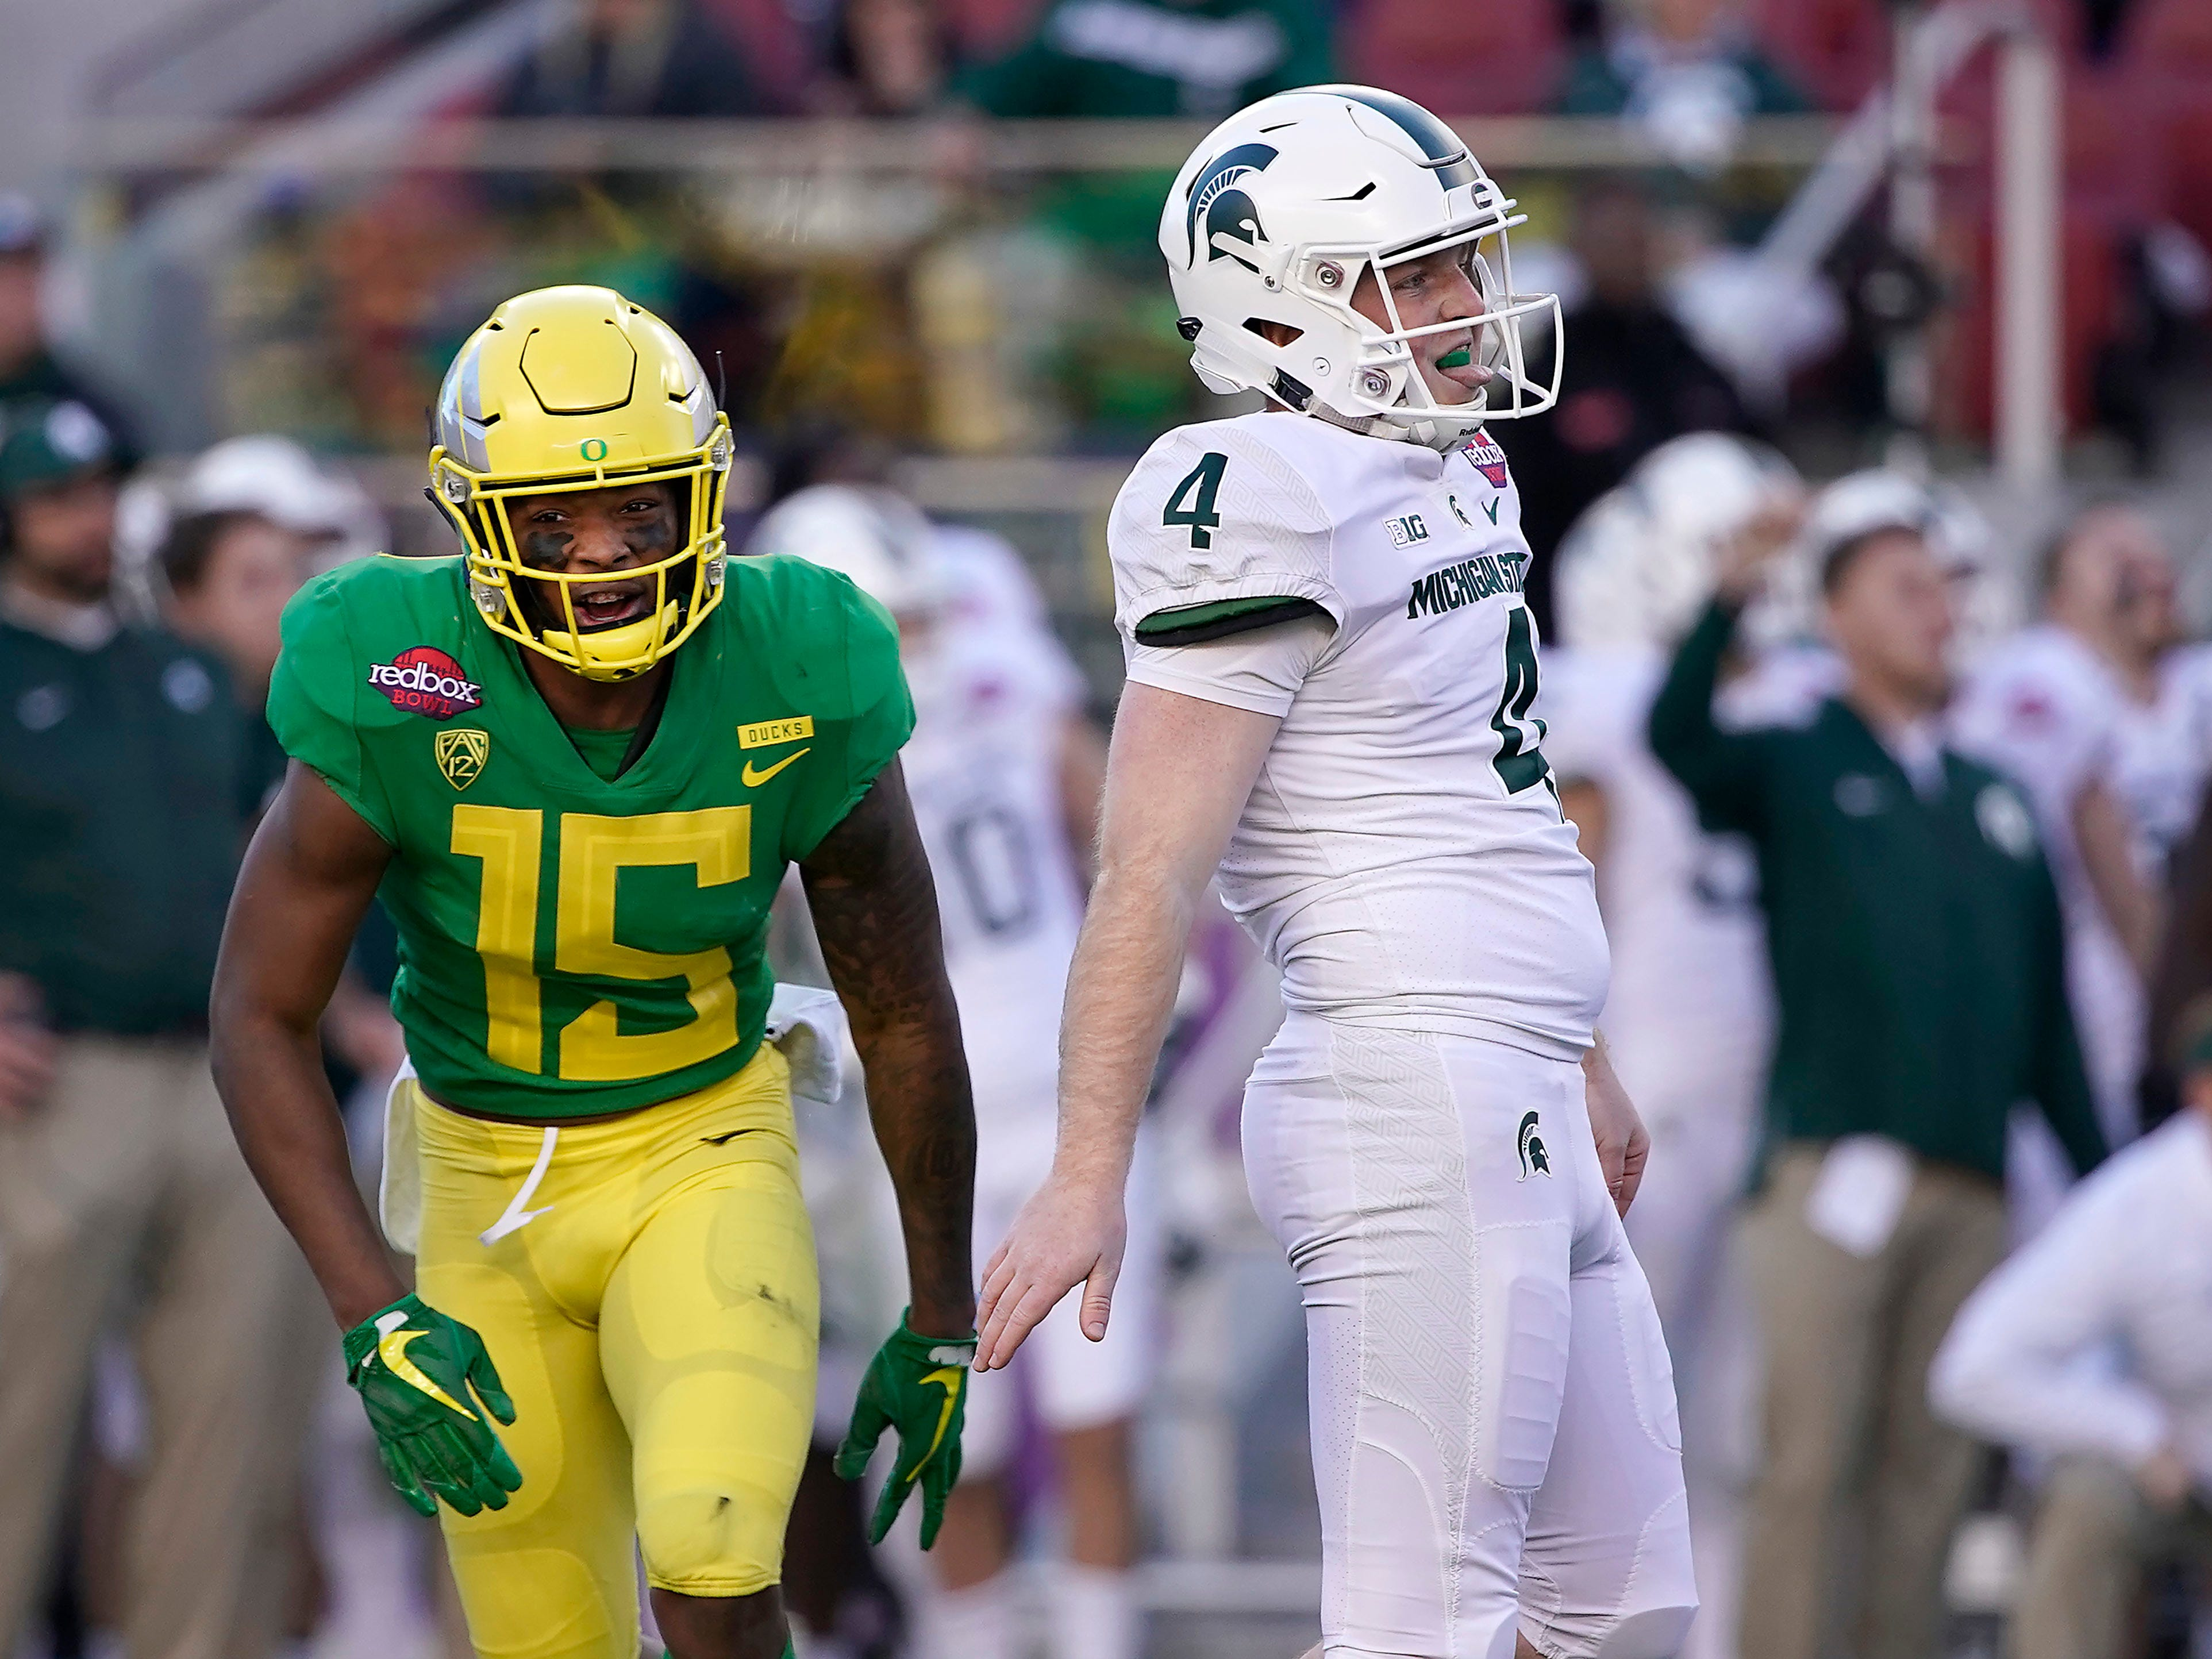 Oregon's Deommodore Lenoir (15) reacts after Michigan State place-kicker Matt Coghlin (4) missed a field goal during the second half of the Redbox Bowl NCAA college football game Monday, Dec. 31, 2018, in Santa Clara, Calif. Oregon won 7-6.